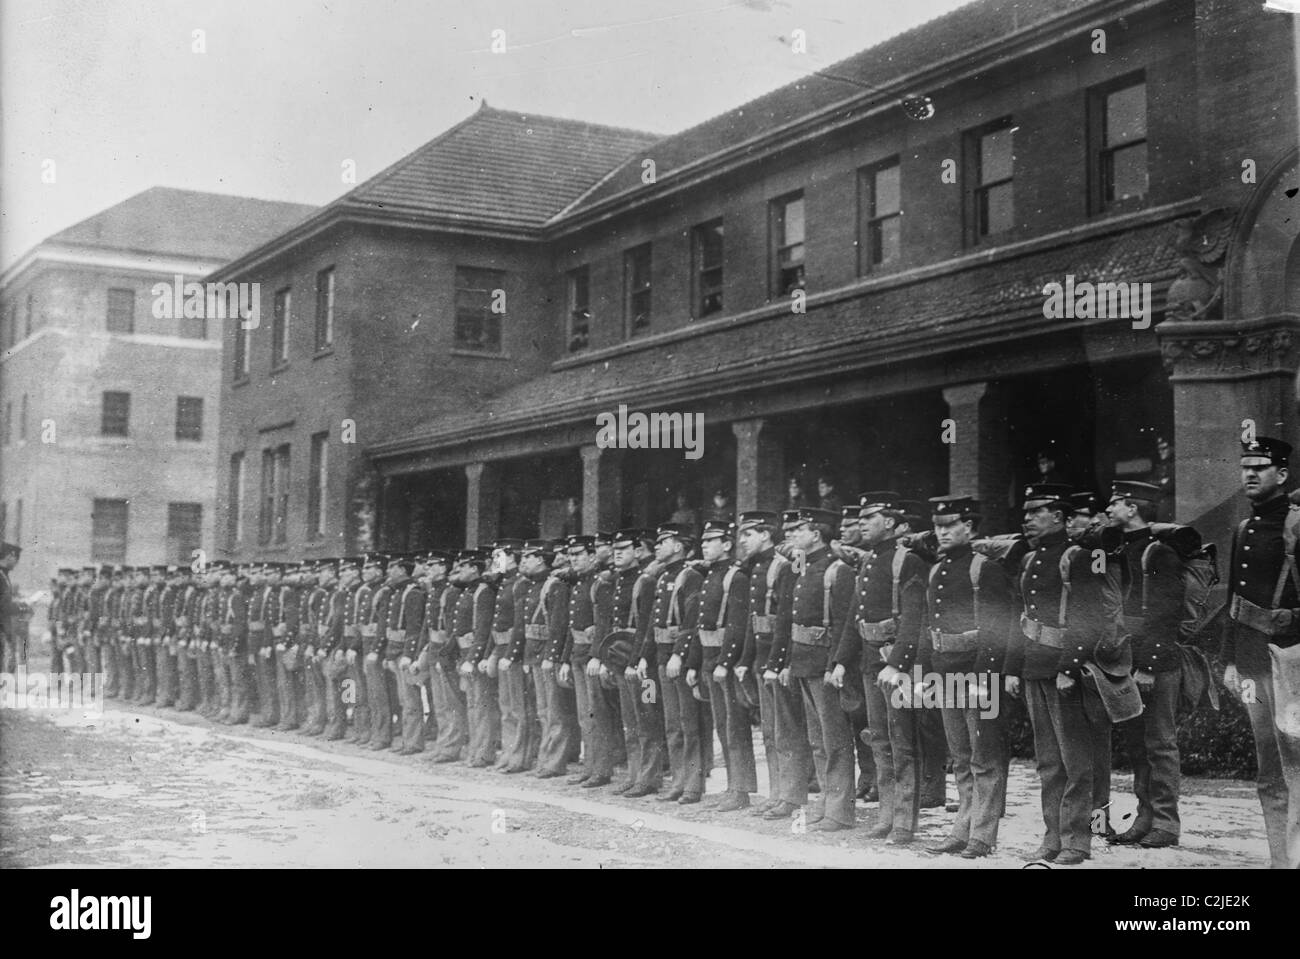 Marines in Formation at the League Island Naval Base in Philadelphia - Stock Image